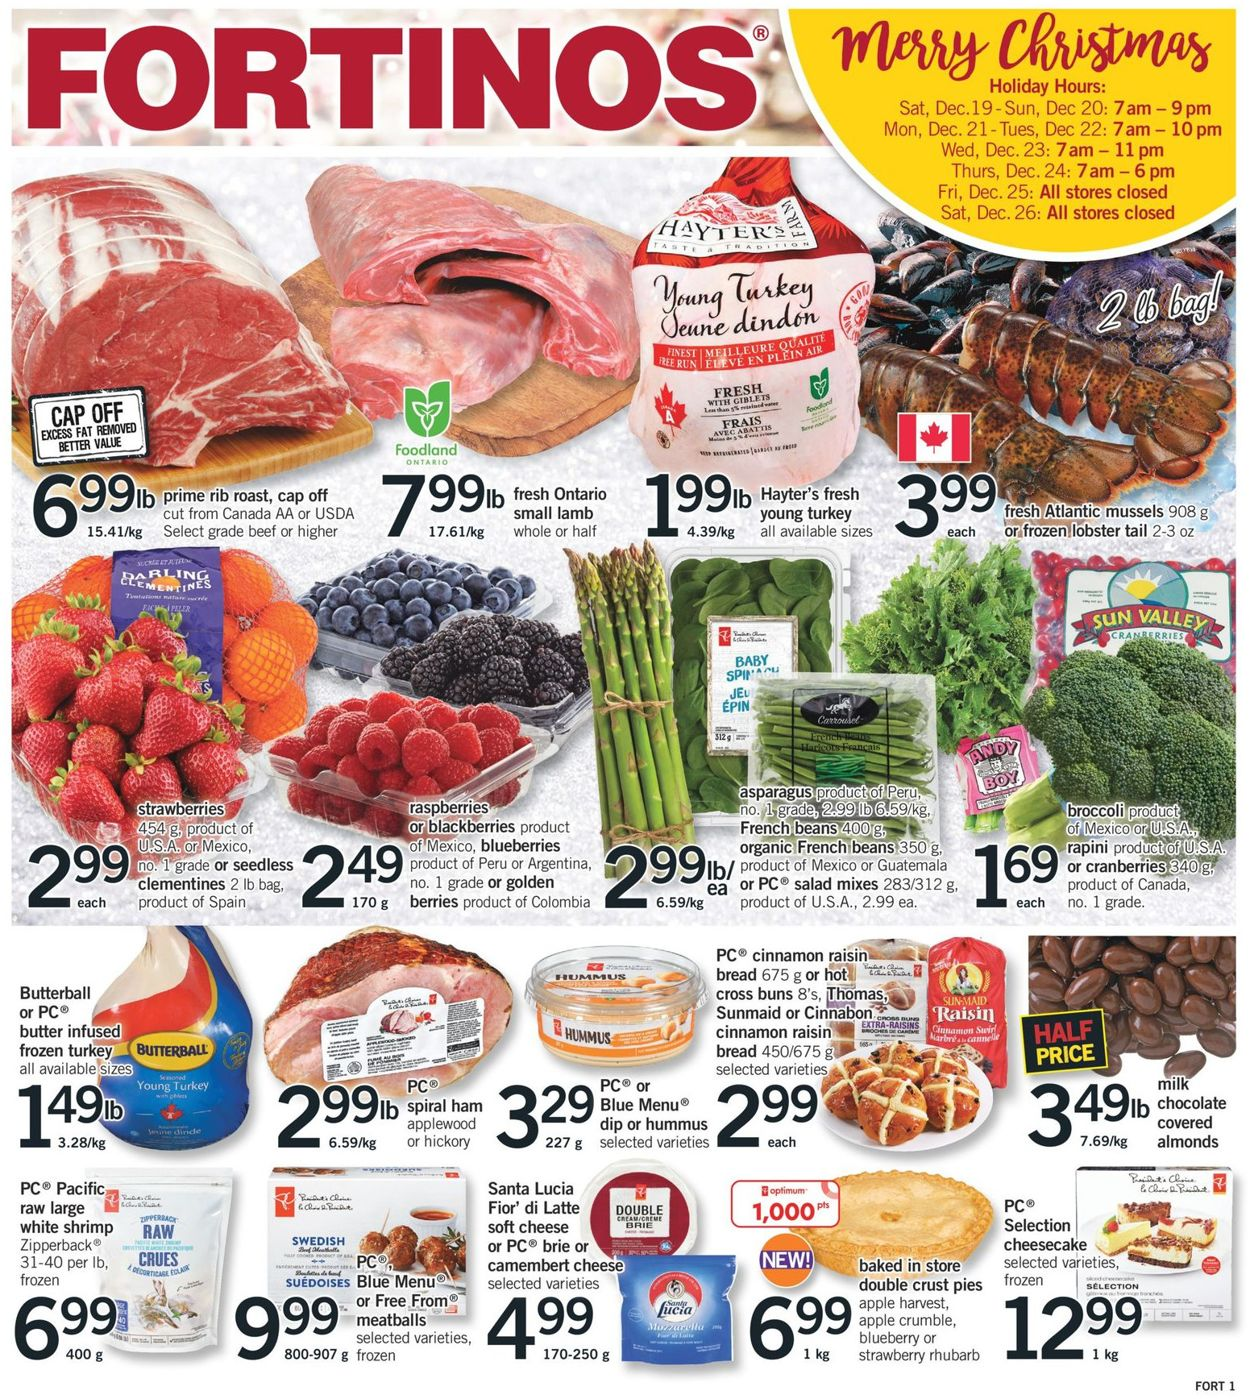 Fortinos- Holiday 2020 Flyer - 12/17-12/24/2020